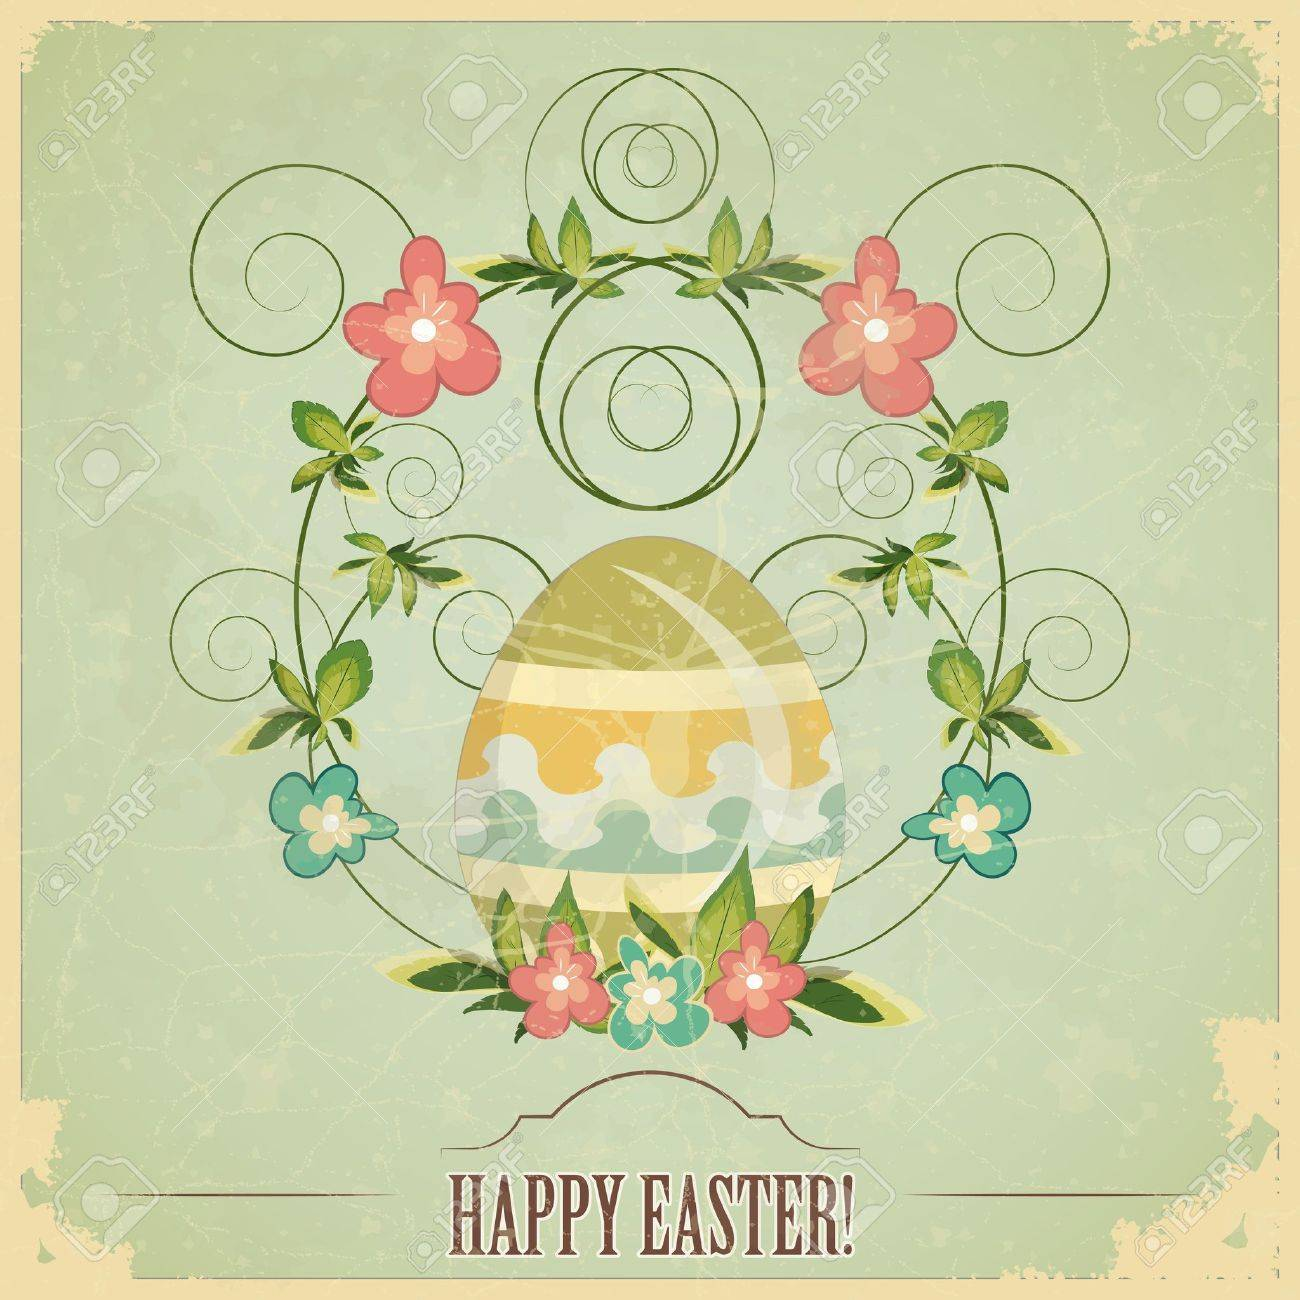 vintage Easter greeting card with colored eggs and flowers Stock Vector - 12801944